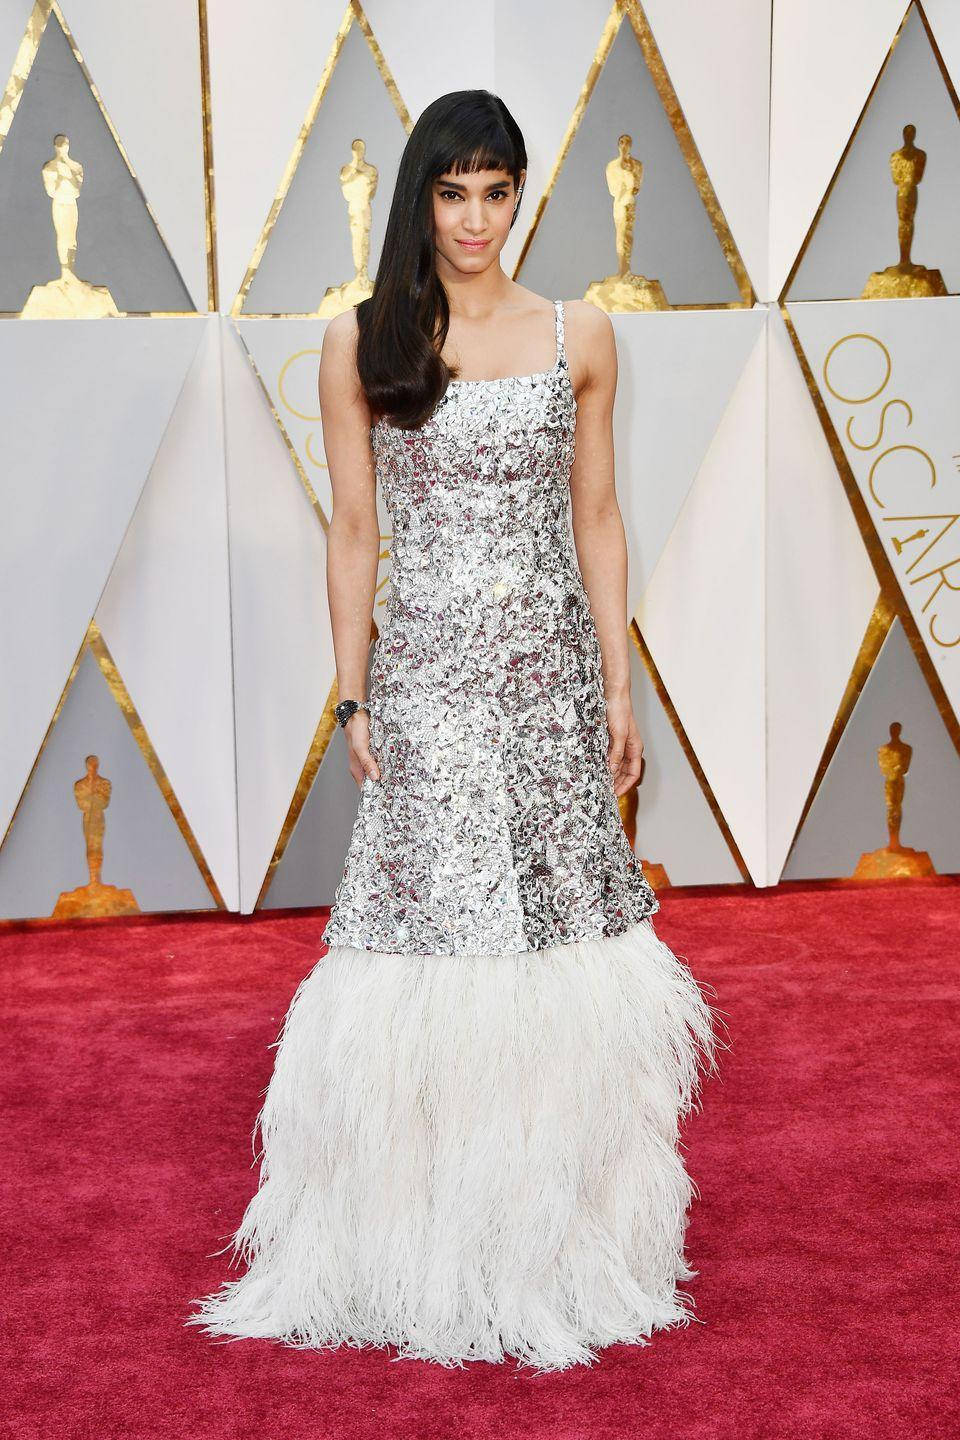 <p>Newcomer Sofia Boutella brought the shine to the red carpet in this sequin and feathered gown from Chanel Haute Couture, cementing her status as one to watch. </p>